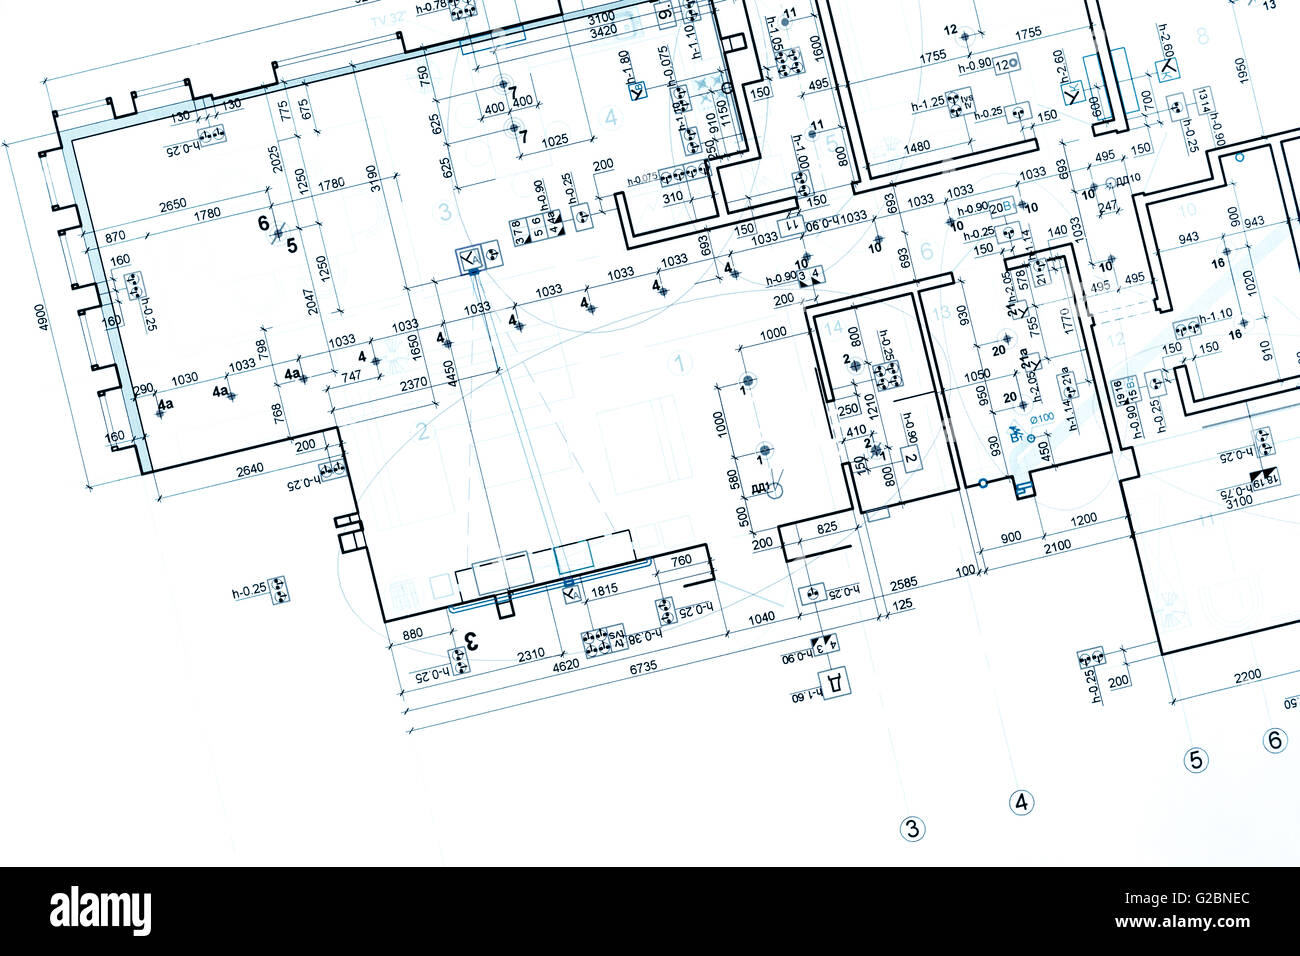 Blueprint Floor Plans Architectural Drawings Construction Stock